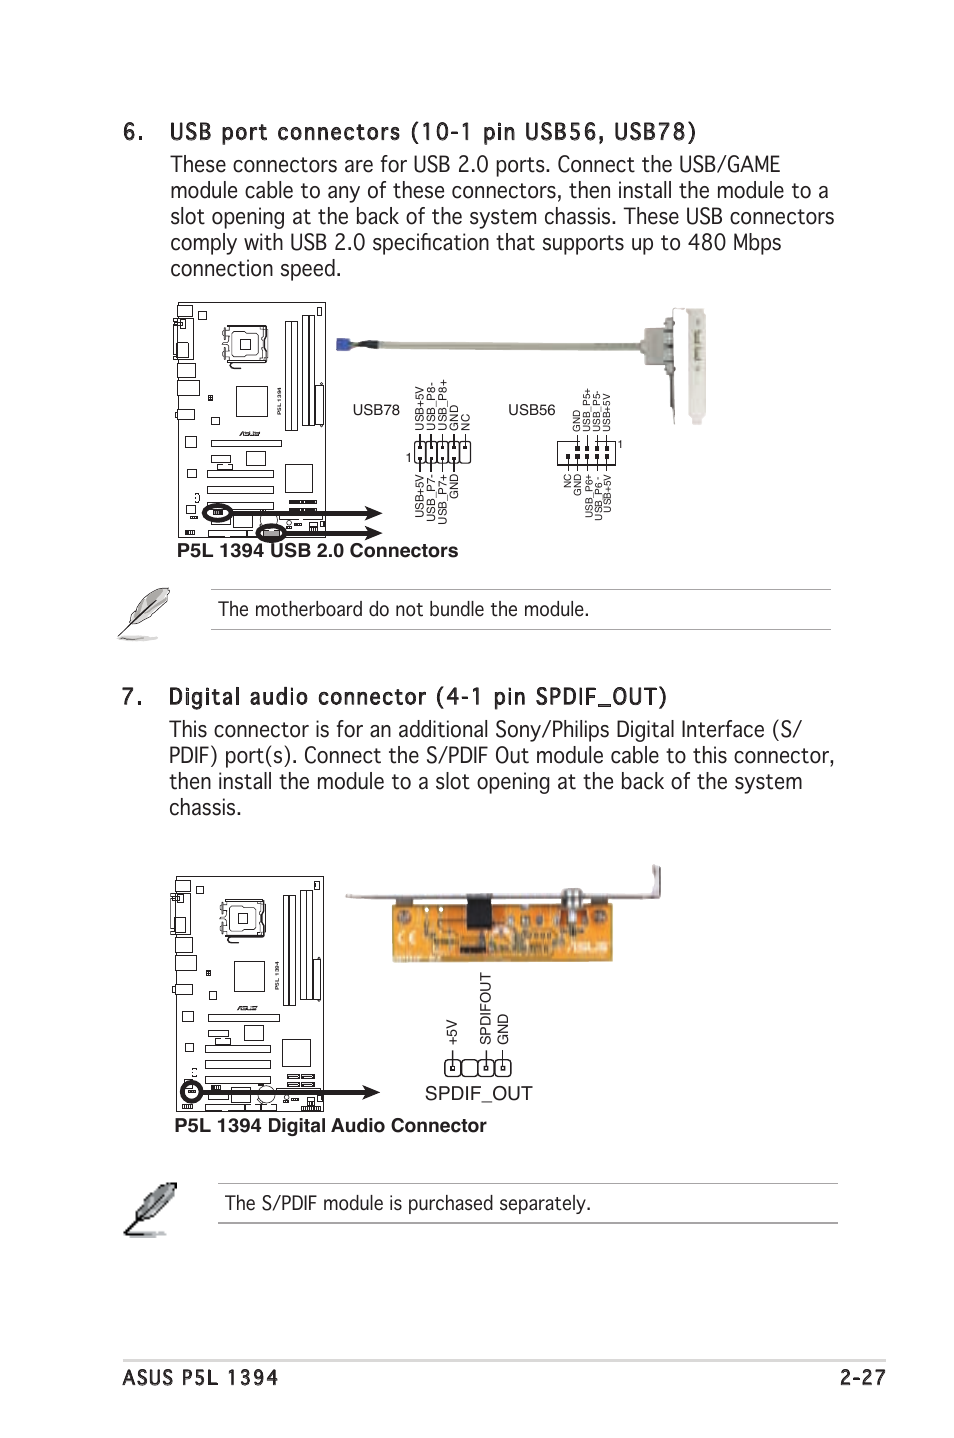 Asus Psl 1394 Manual Photos Collections Usb Cable Wiring Diagram The S Pdif Module Is Purchased Separately Spdif Out Motherboard P5l Installation